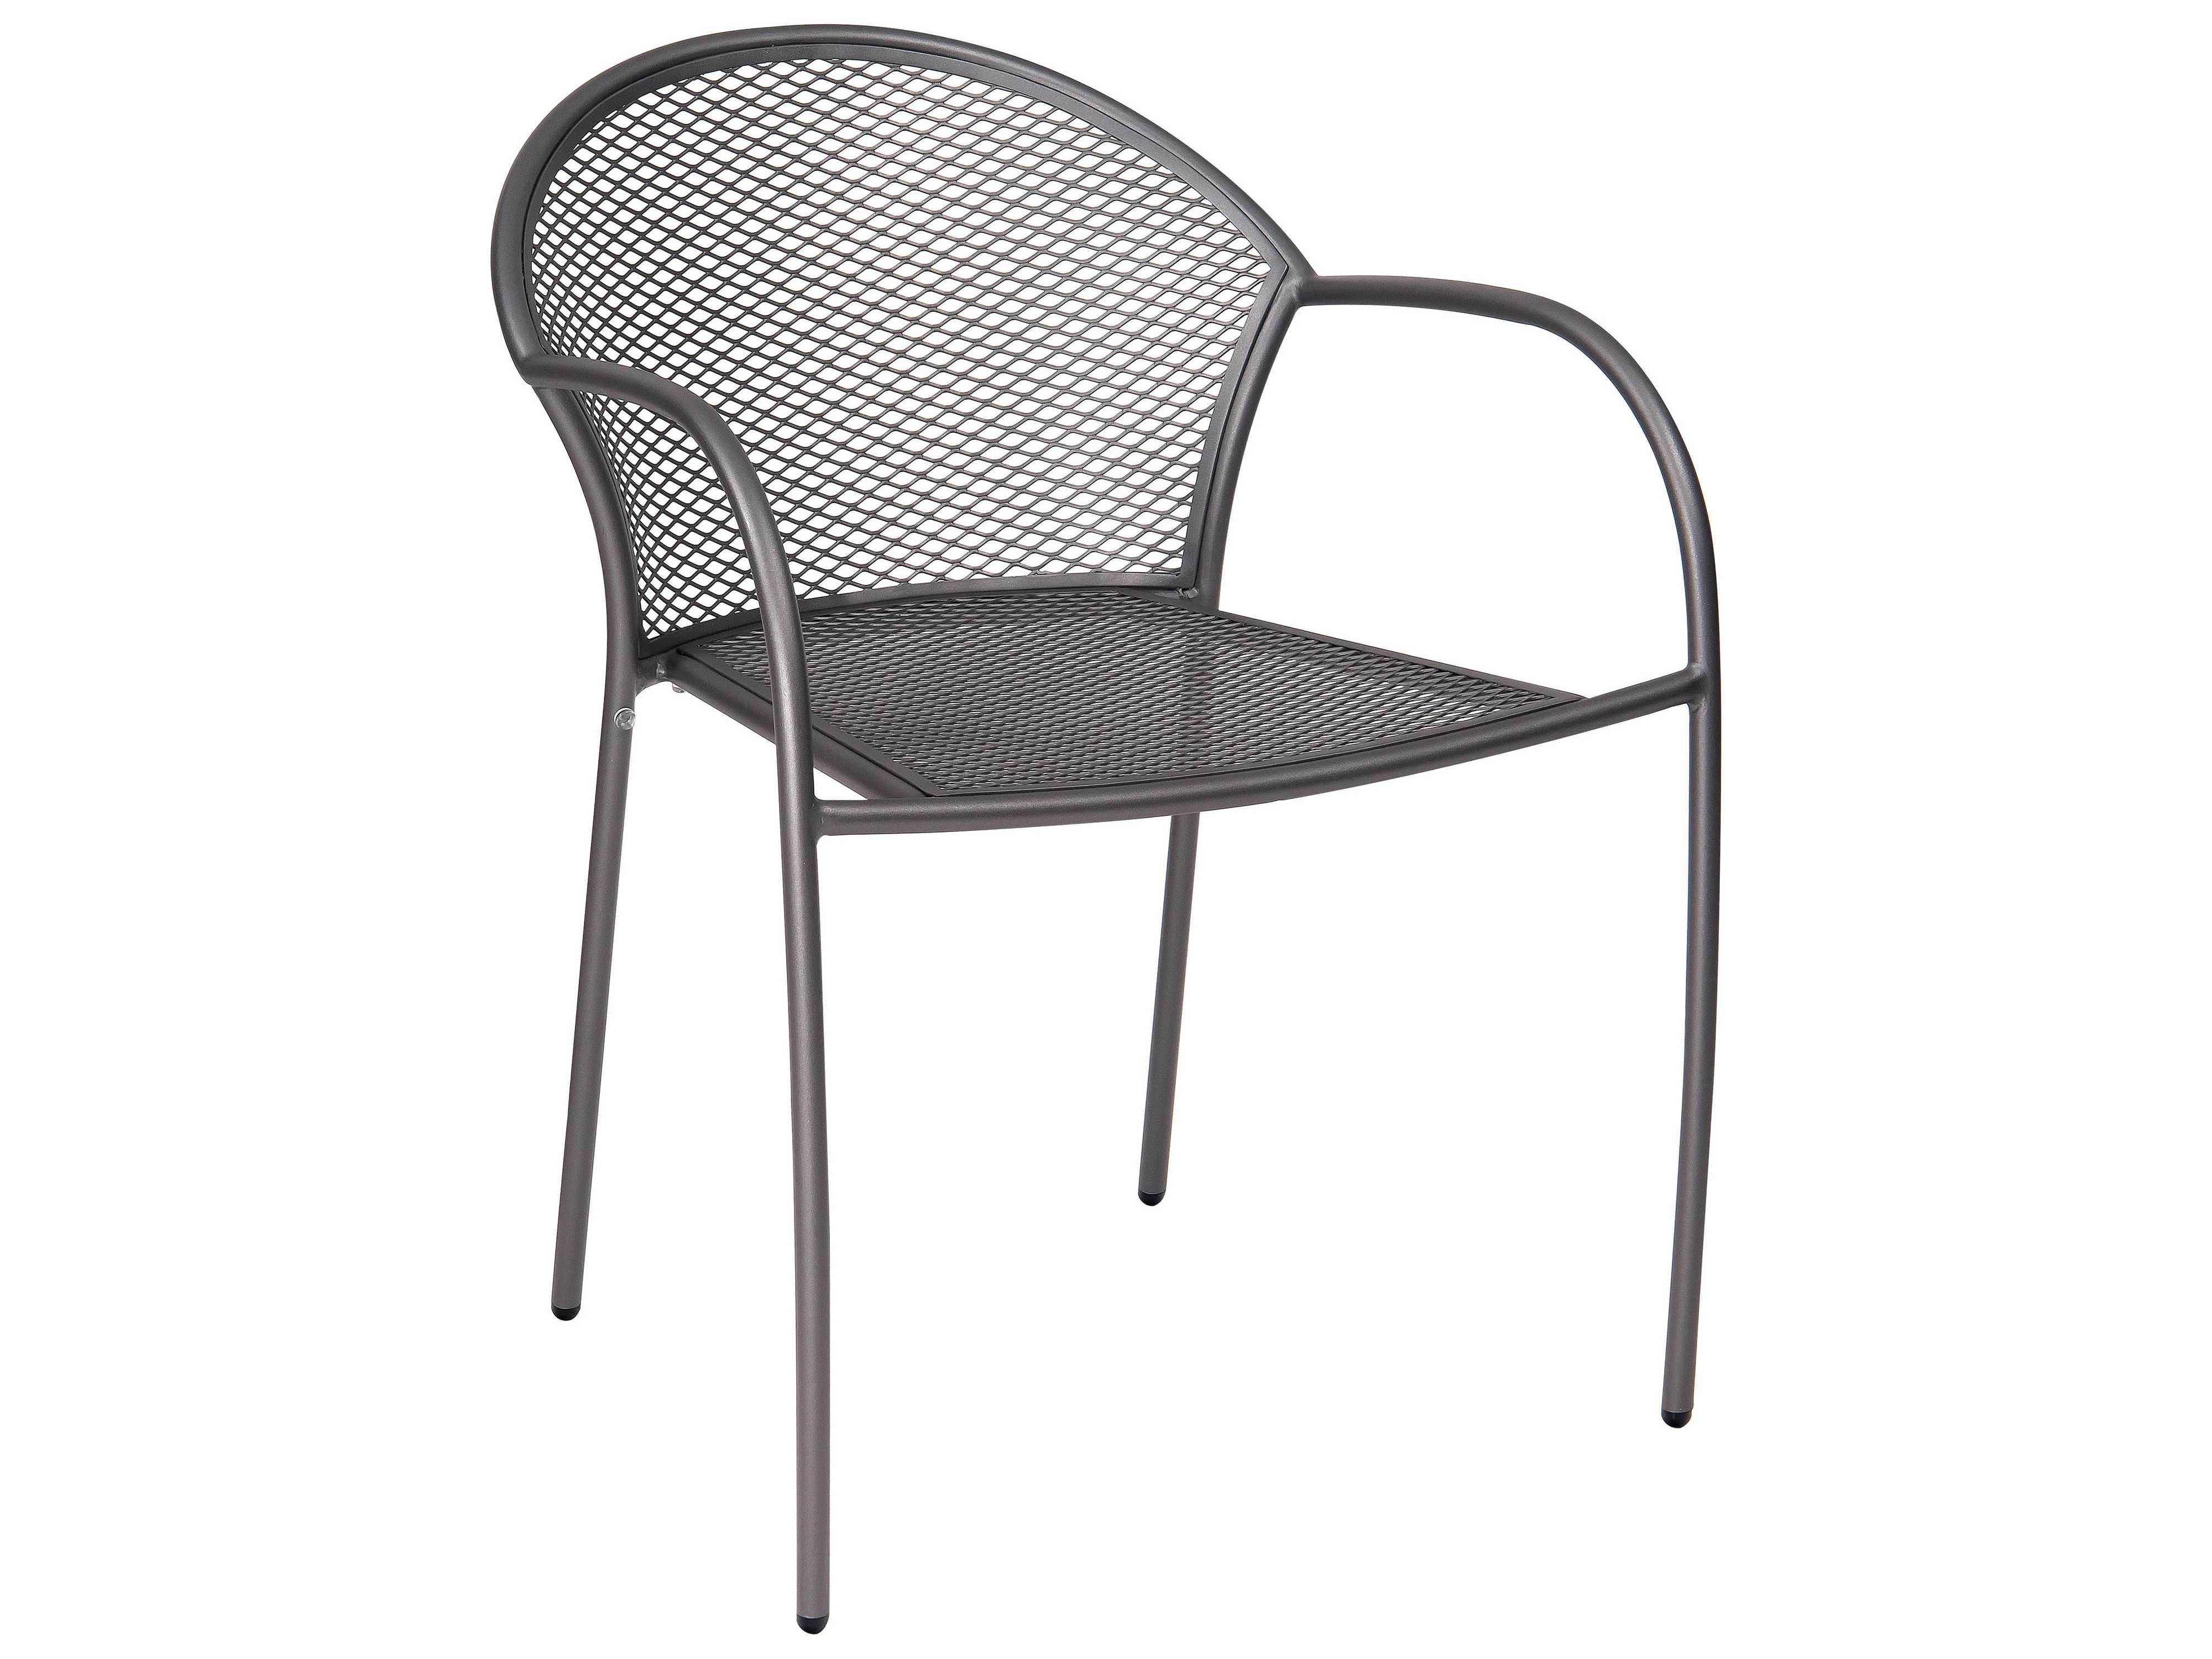 Woodard carmel wrought iron stacking arm chair d